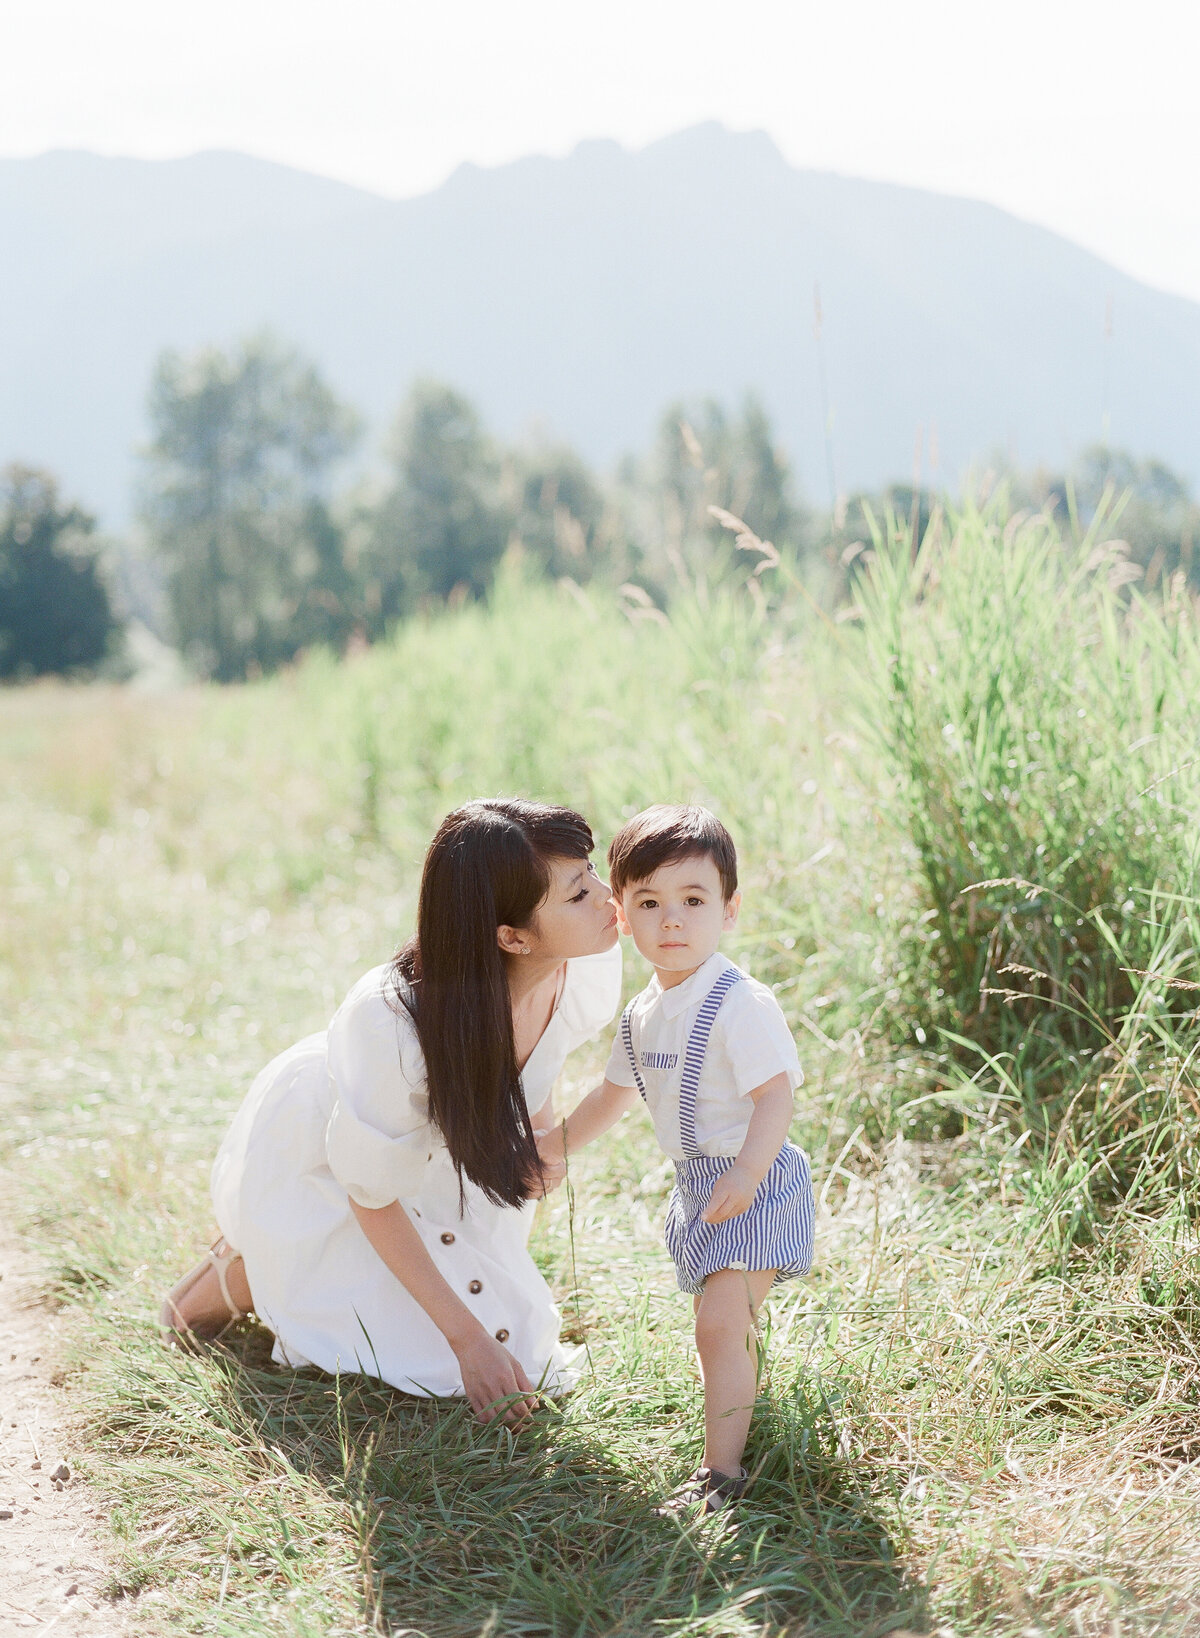 Tiffany, Ryan, and Ronan - Family Session - Tetiana Photography-29